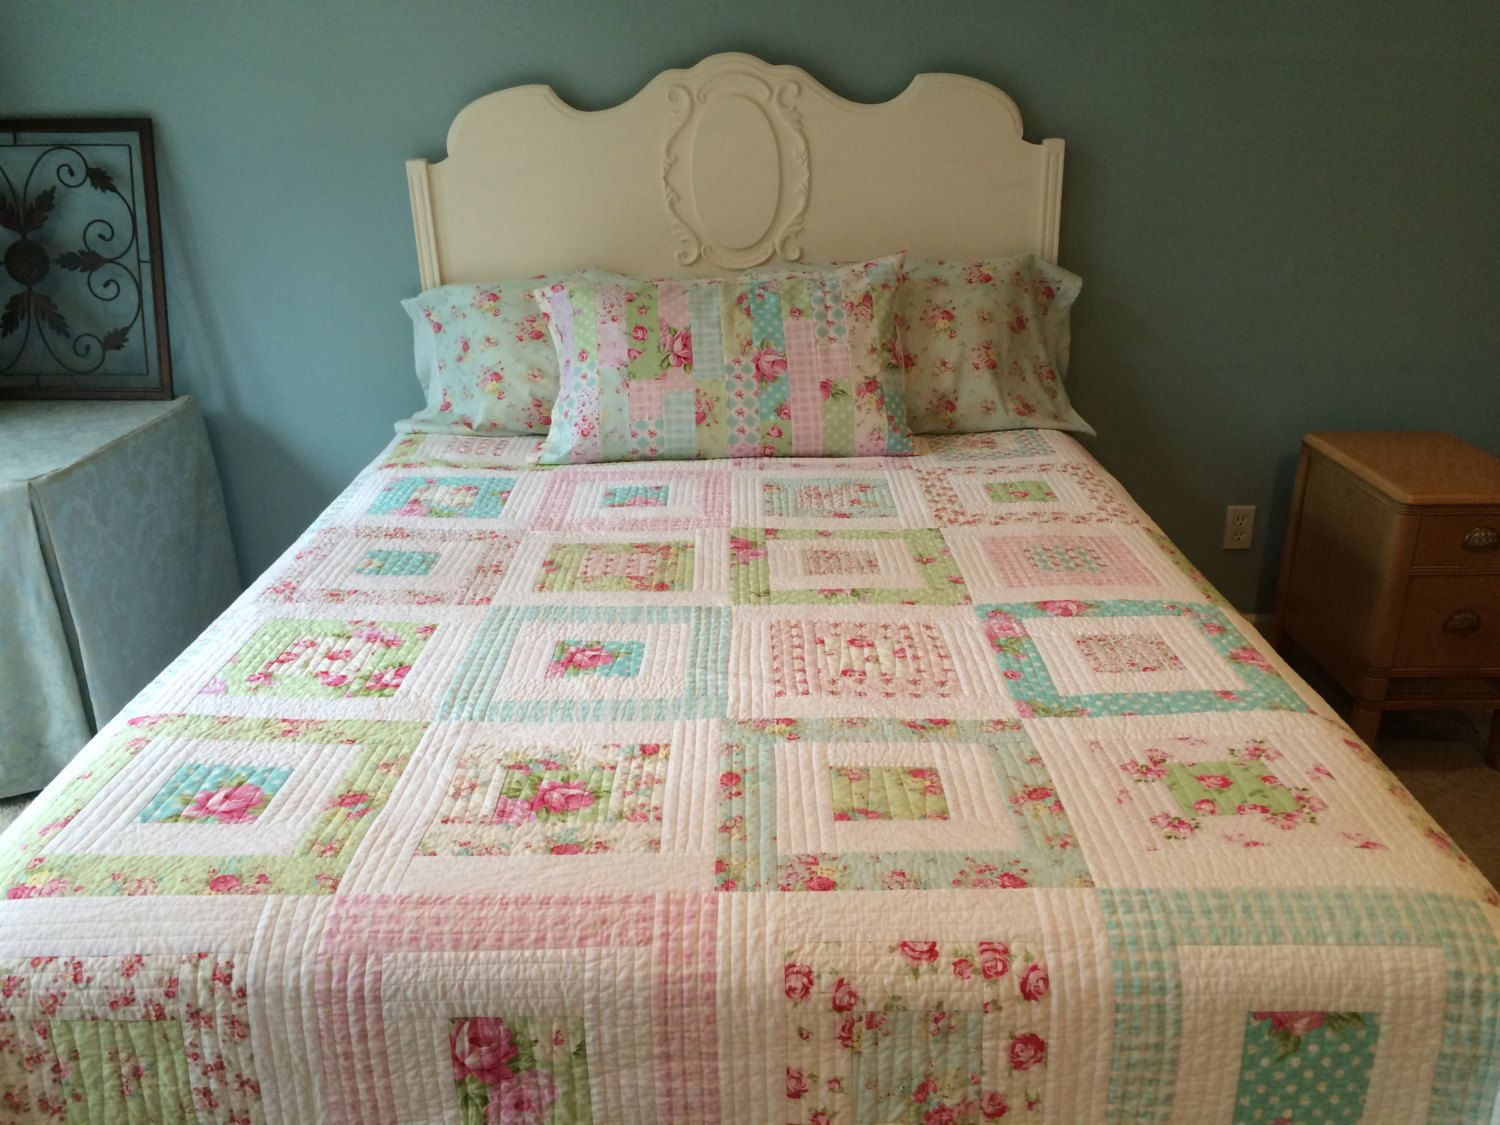 Best 25+ Shabby chic quilts ideas on Pinterest | Pink quilts ... : shabby chic quilts and comforters - Adamdwight.com